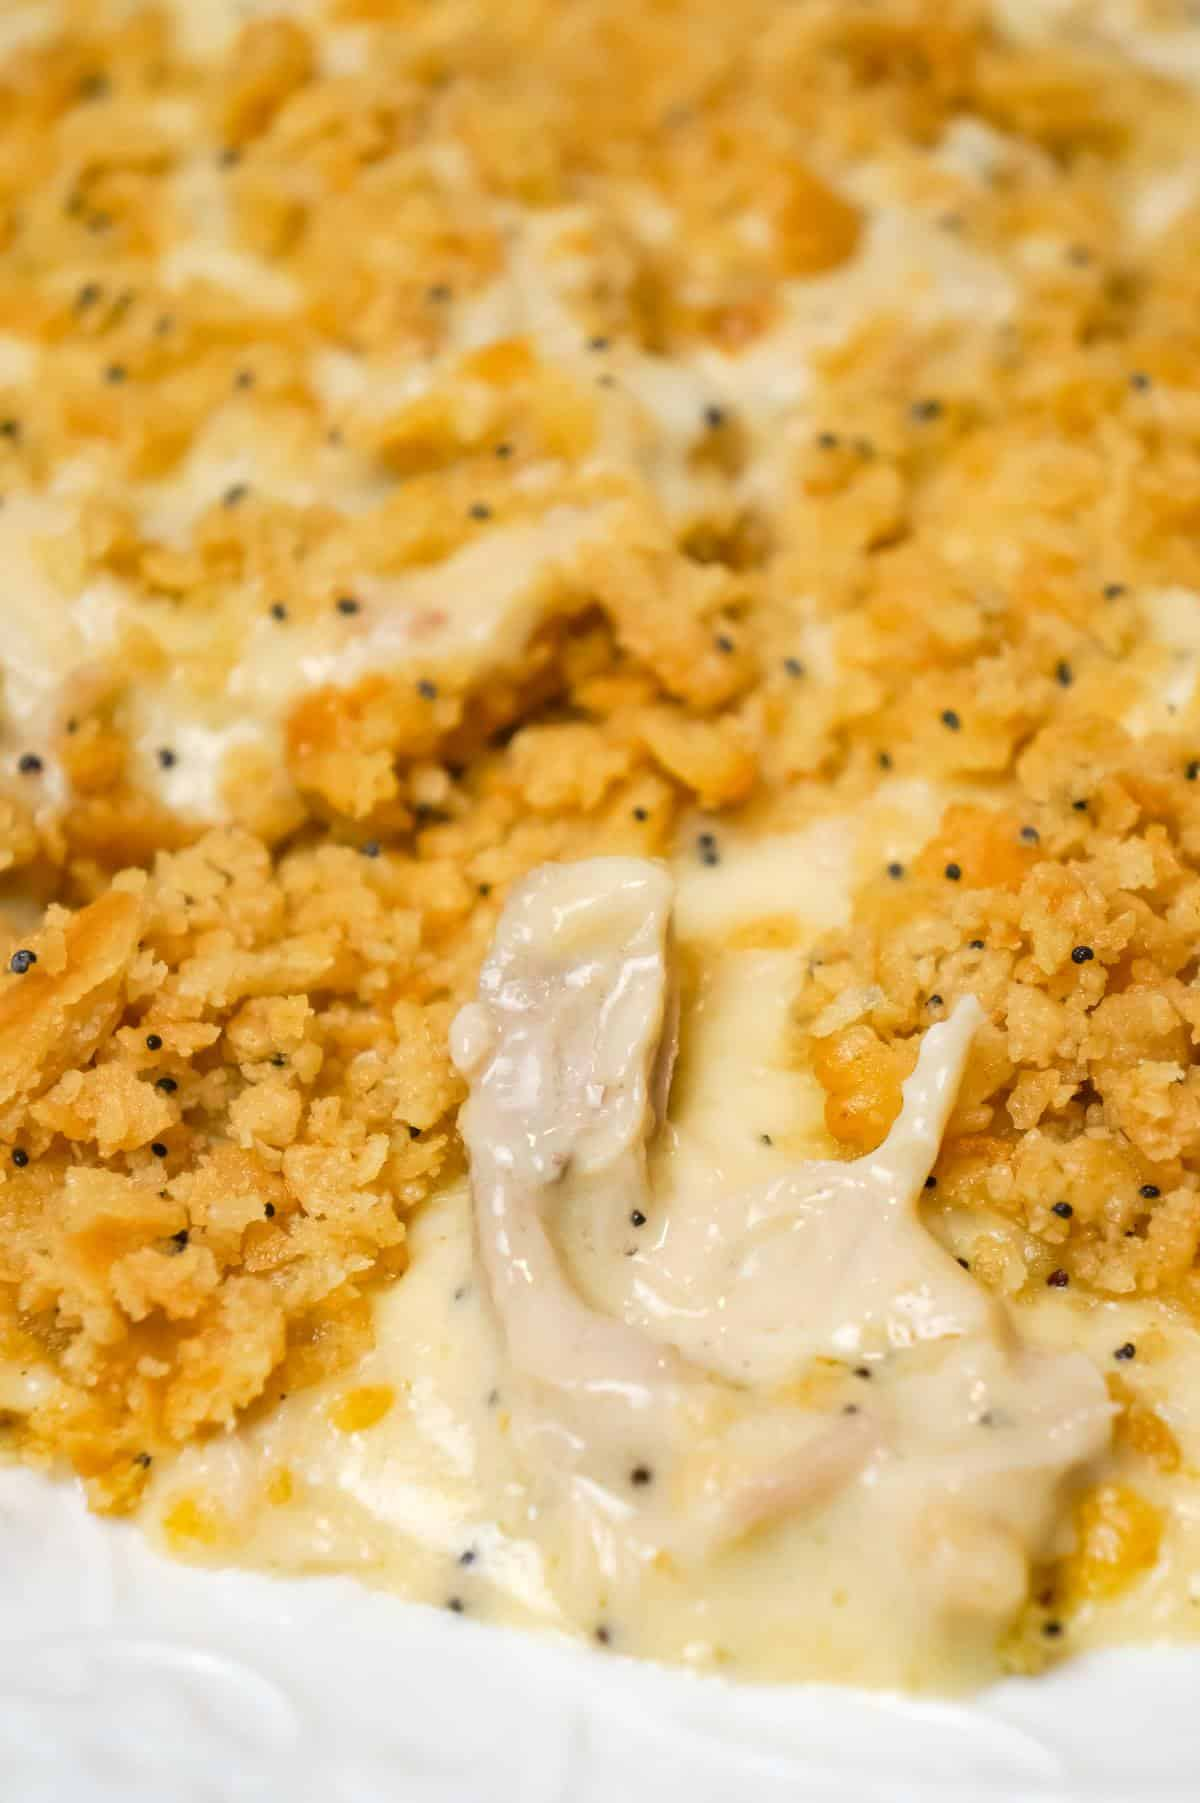 Poppy Seed Chicken Casserole is an easy dinner recipe loaded with shredded chicken, cream of chicken soup, shredded cheese and poppy seeds and topped with crumbled Ritz crackers.